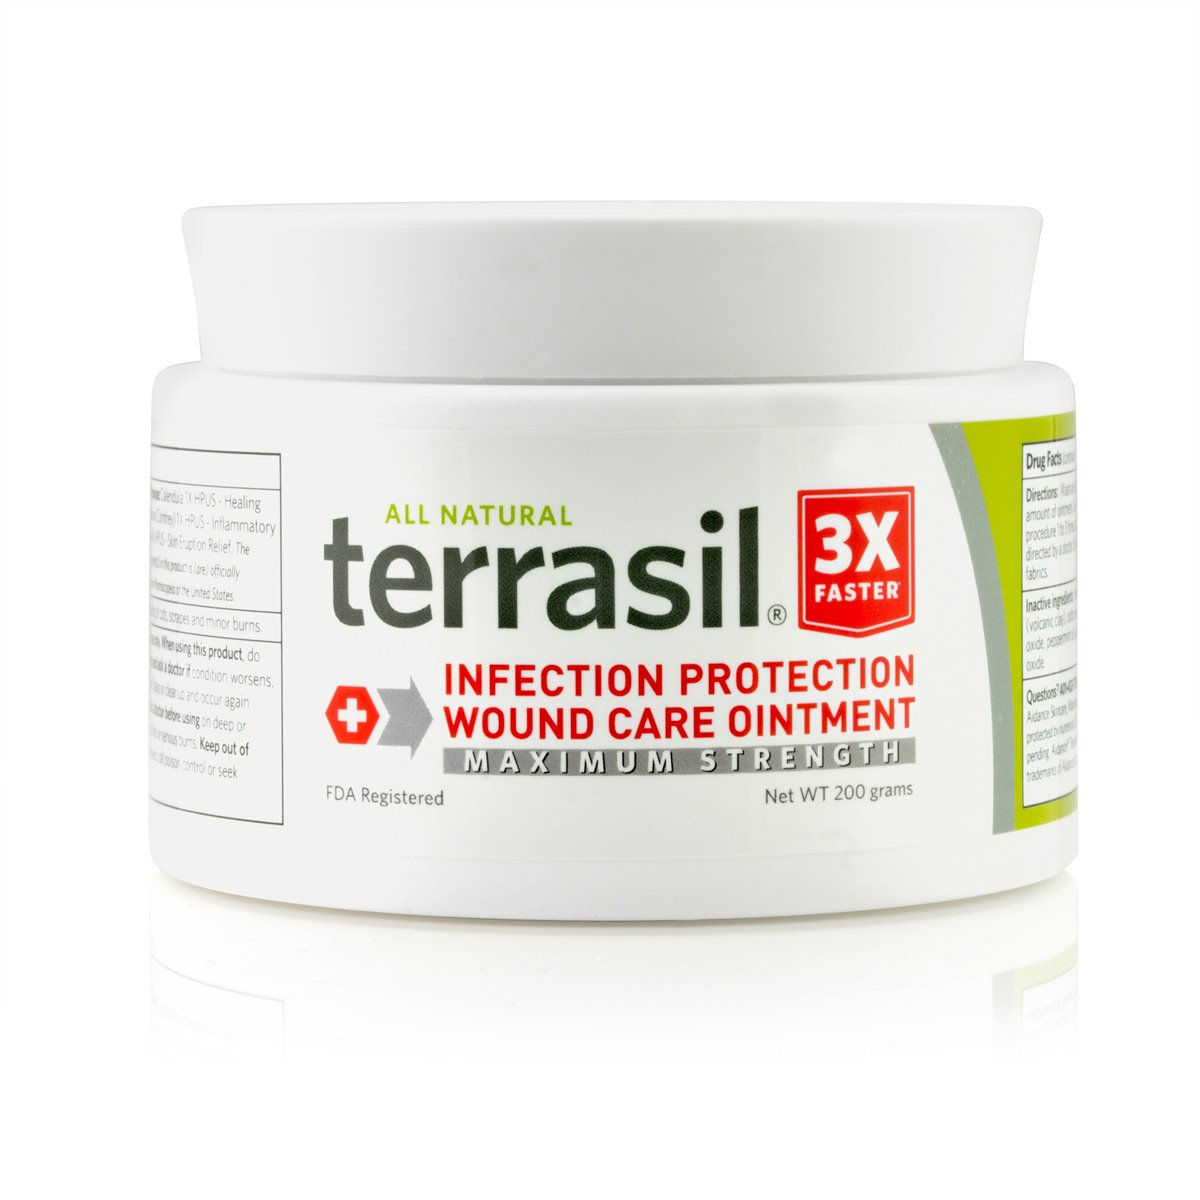 Terrasil® Wound Care - 3X Faster Healing, Dr. Recommended, Infection Protection Ointment for Bed sores, Pressure sores, Diabetic Wounds, ulcers, cuts, scrapes, and Burns - 200g Jar by Aidance Skincare & Topical Solutions